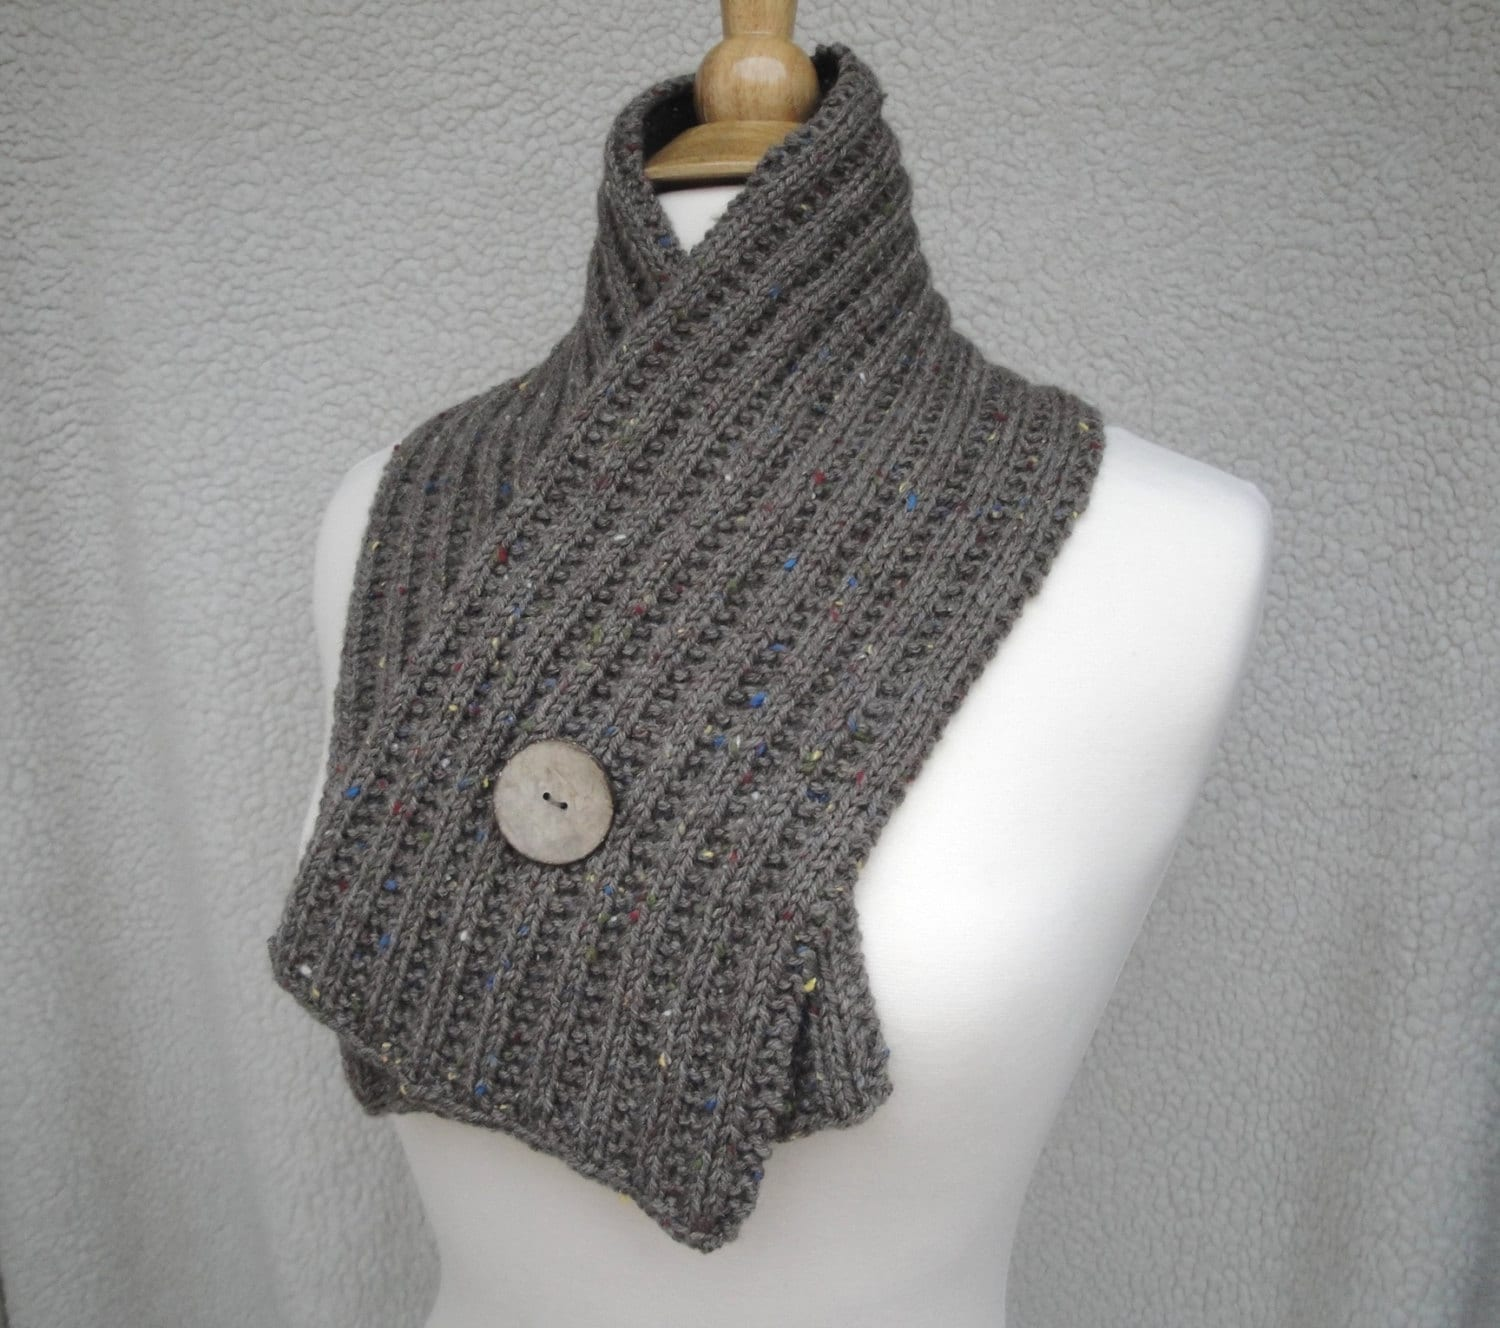 Button Wrap Scarf Knitting Pattern DIY Crossover Scarf Cowl